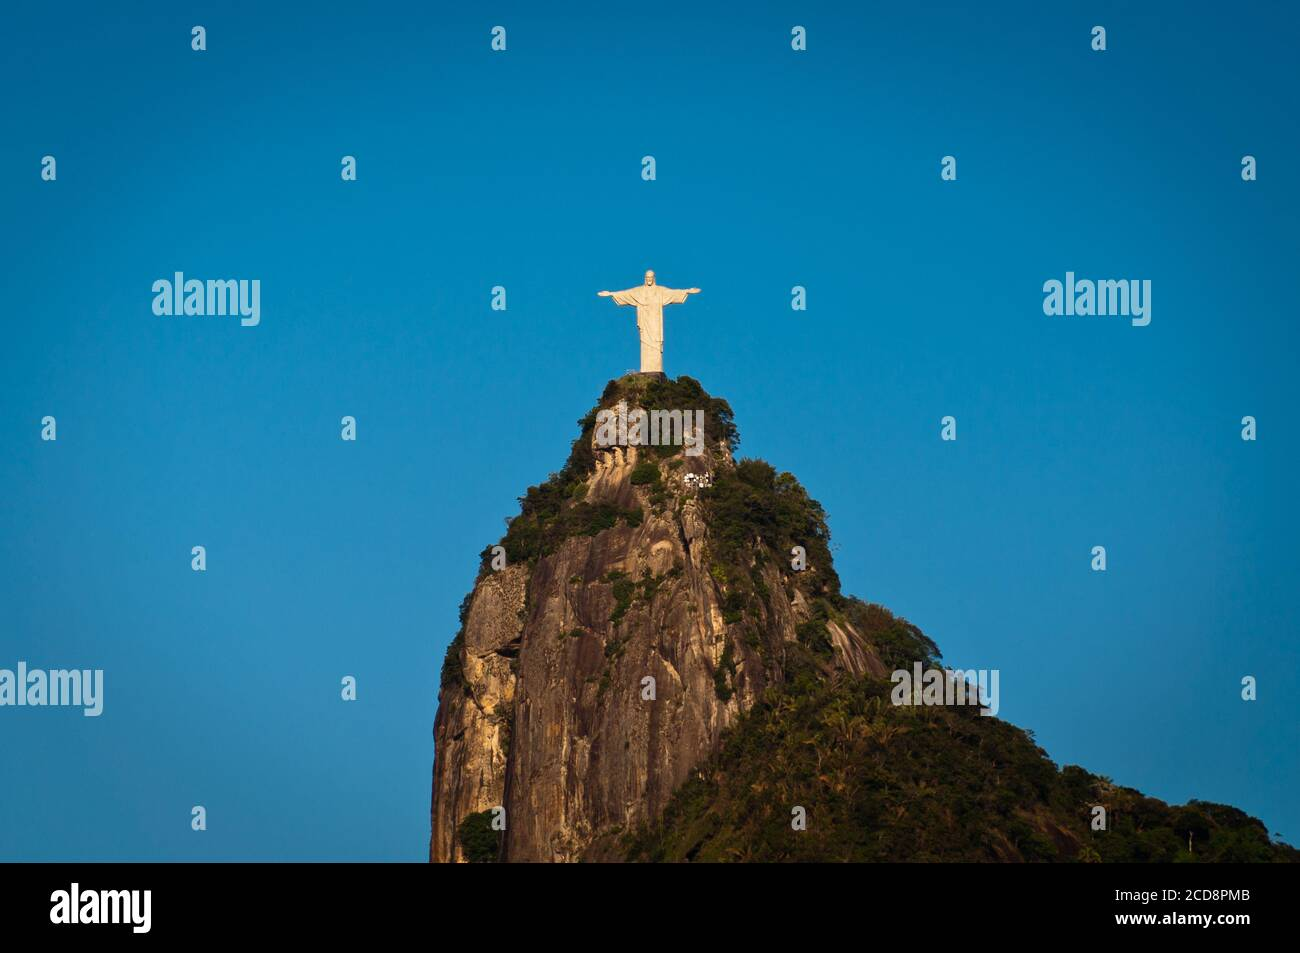 The famous landmark of Rio de Janeiro - Christ the Redeemer statue on the Corcovado mountain Stock Photo